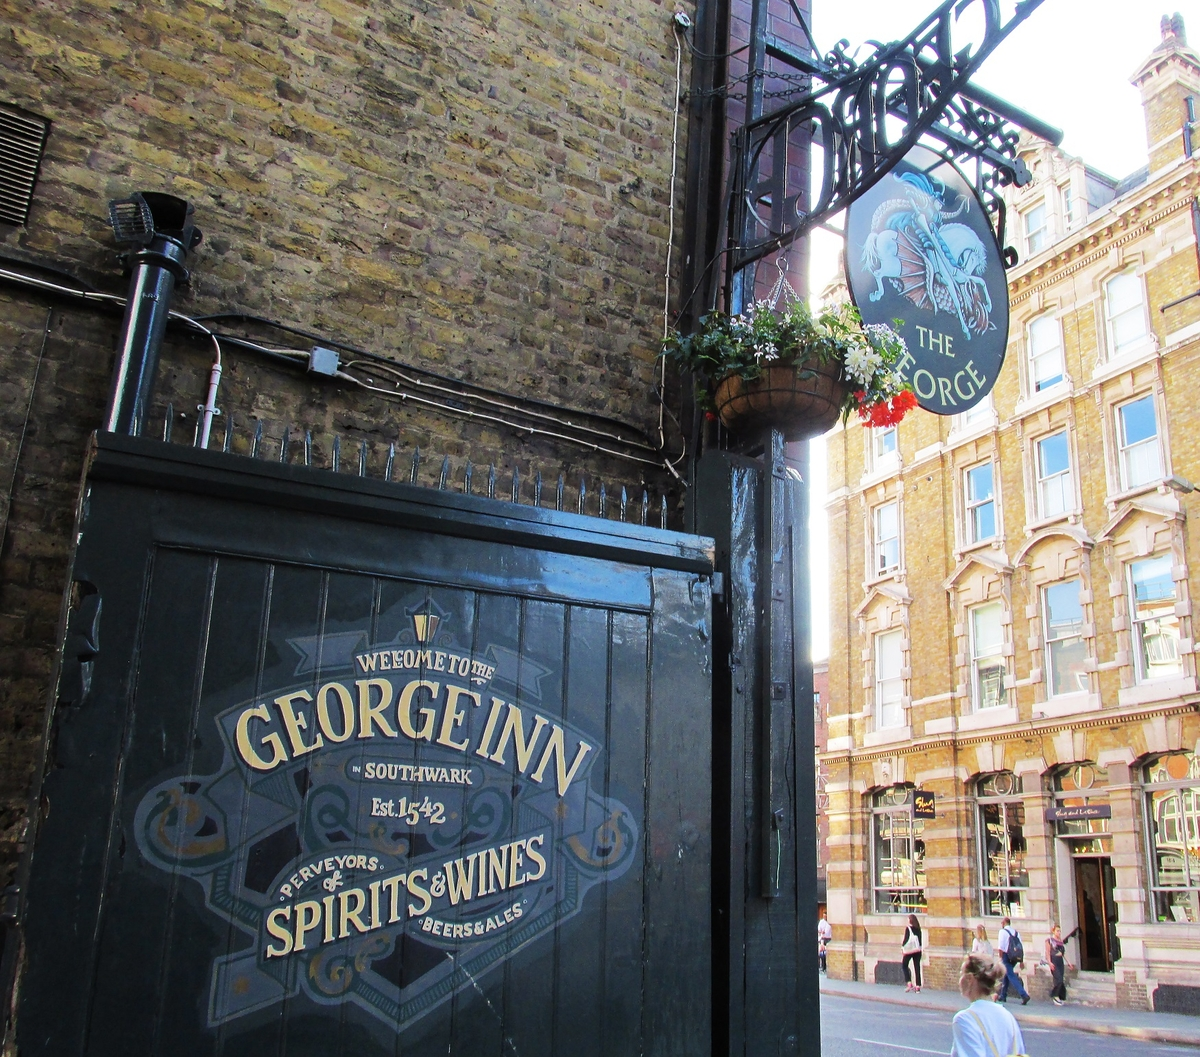 the george inn street sign and entrance gate